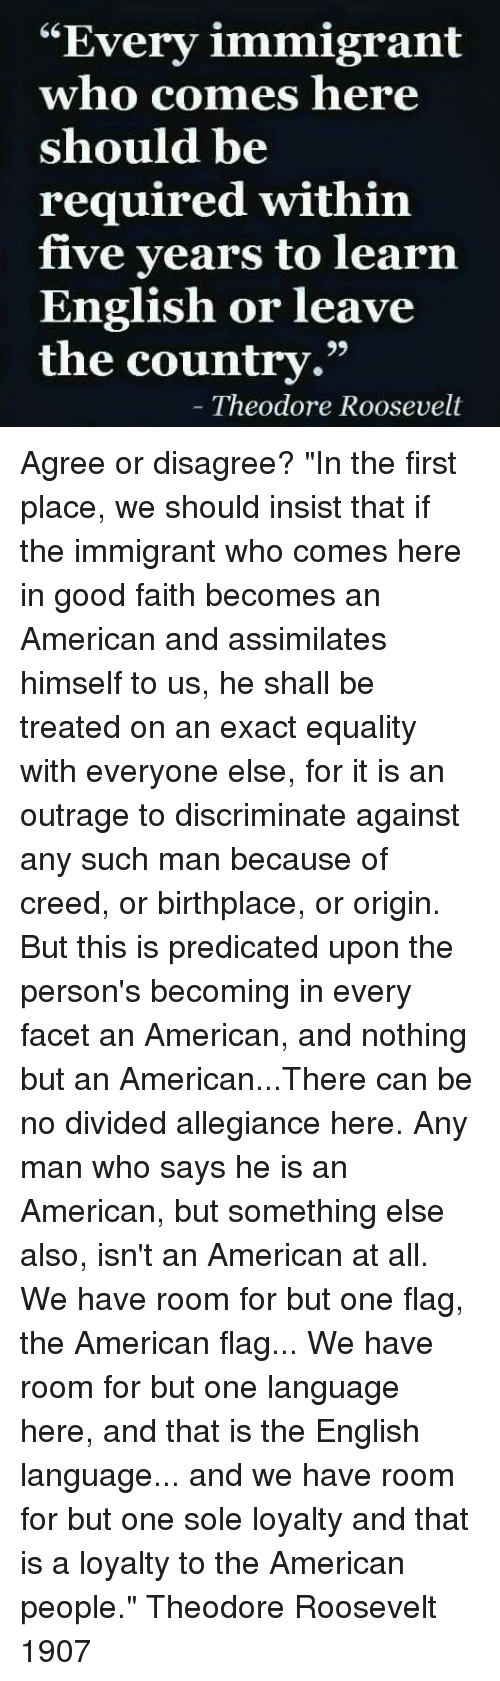 """Memes, American, and American Flag: """"Every immigrant  who comes here  should be  required within  five years to learn  English or leave  the country.""""  Theodore Roosevelt Agree or disagree?  """"In the first place, we should insist that if the immigrant who comes here in good faith becomes an American and assimilates himself to us, he shall be treated on an exact equality with everyone else, for it is an outrage to discriminate against any such man because of creed, or birthplace, or origin.   But this is predicated upon the person's becoming in every facet an American, and nothing but an American...There can be no divided allegiance here.   Any man who says he is an American, but something else also, isn't an American at all.   We have room for but one flag, the American flag... We have room for but one language here, and that is the English language... and we have room for but one sole loyalty and that is a loyalty to the American people.""""  Theodore Roosevelt 1907"""